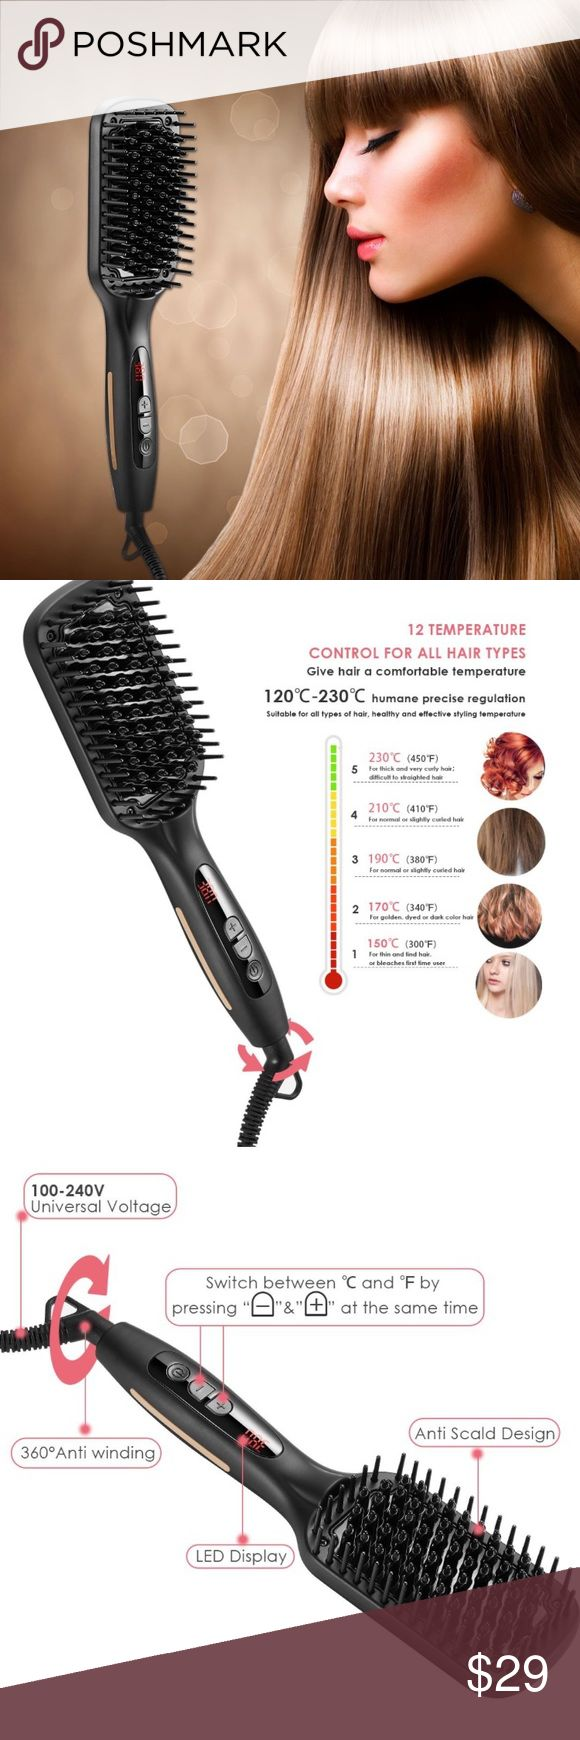 Hair Straightening Brush. New, opened item. Straightener Brush, this updated ions eliminate frizz and the ceramic plats is built to last heat balance technology: evenly distributes infrared heat across the plate to avoid damaging hair with excess heat, suitable for all kinds of hair. TEMPERATURE SETTING--Max 450℉, auto keep constant temperature at 380℉ for all types of hair, customized set 300℉for thin and lind hair or bleaches first use. 340℉ for gloden, dyed or dark color hair. Accessories